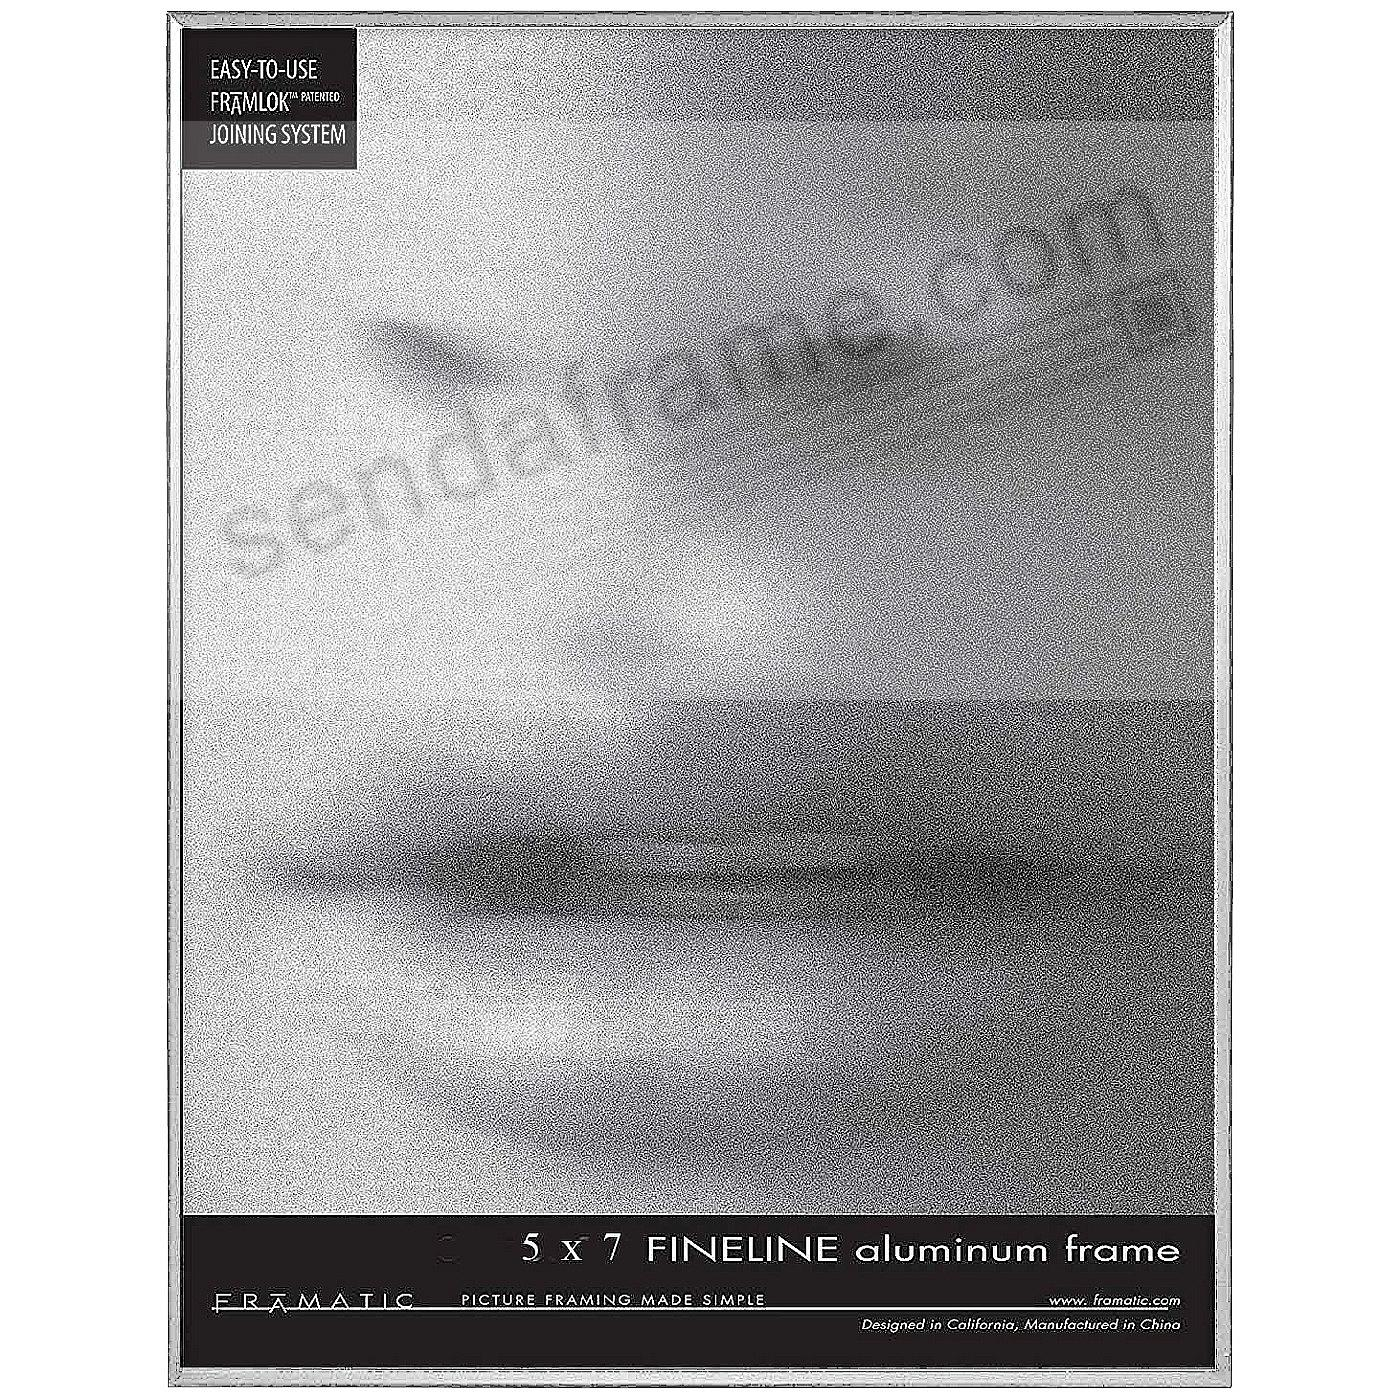 FINE LINE Silver Aluminum 5x7 by Framatic®